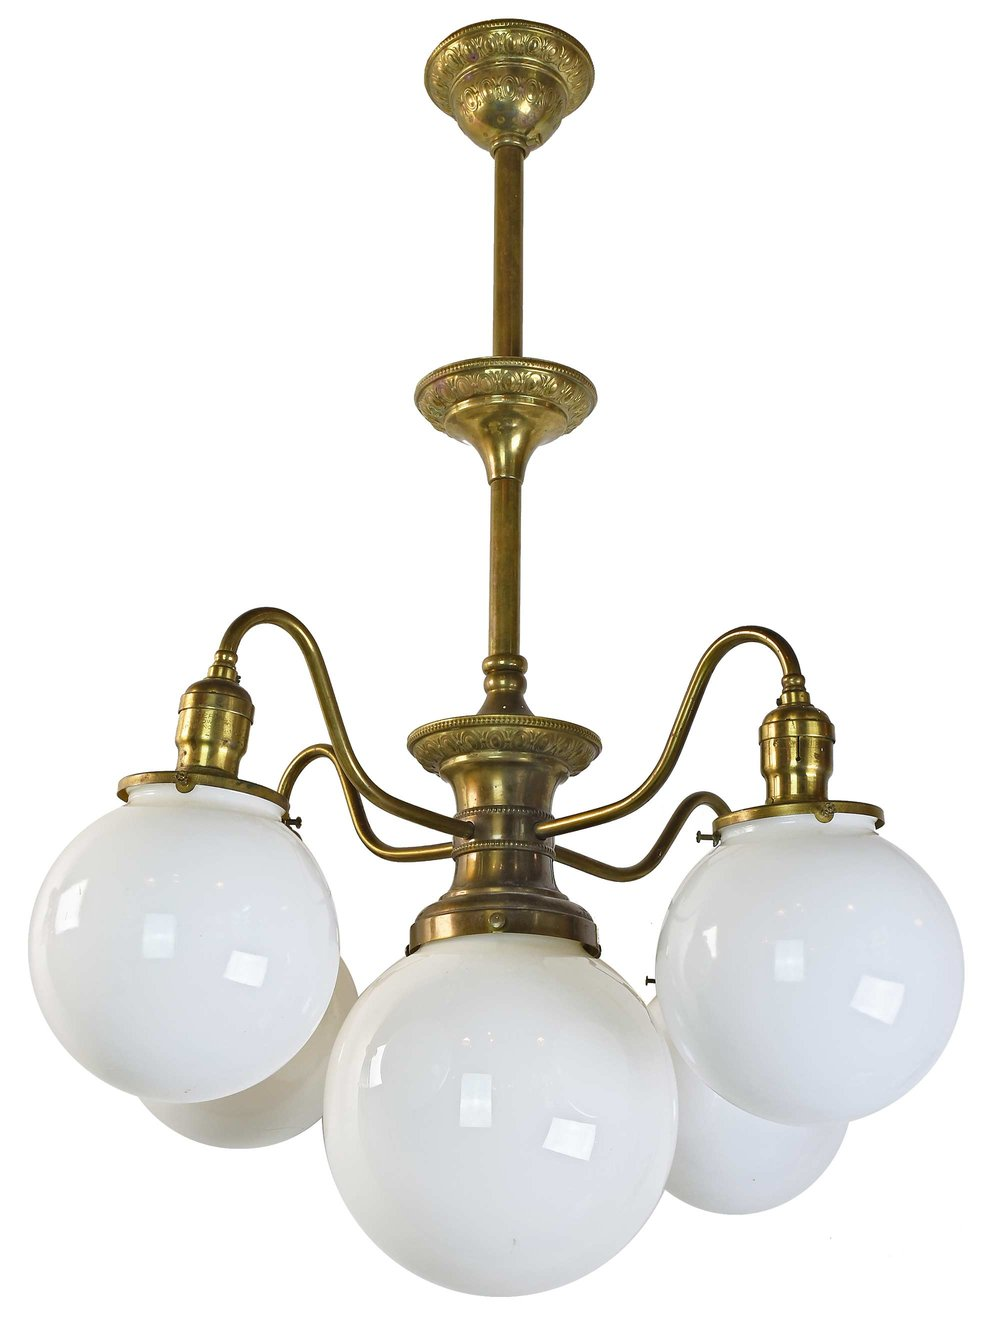 46464-cast-brass-5-light-chandelier-with-globes-angle.jpg